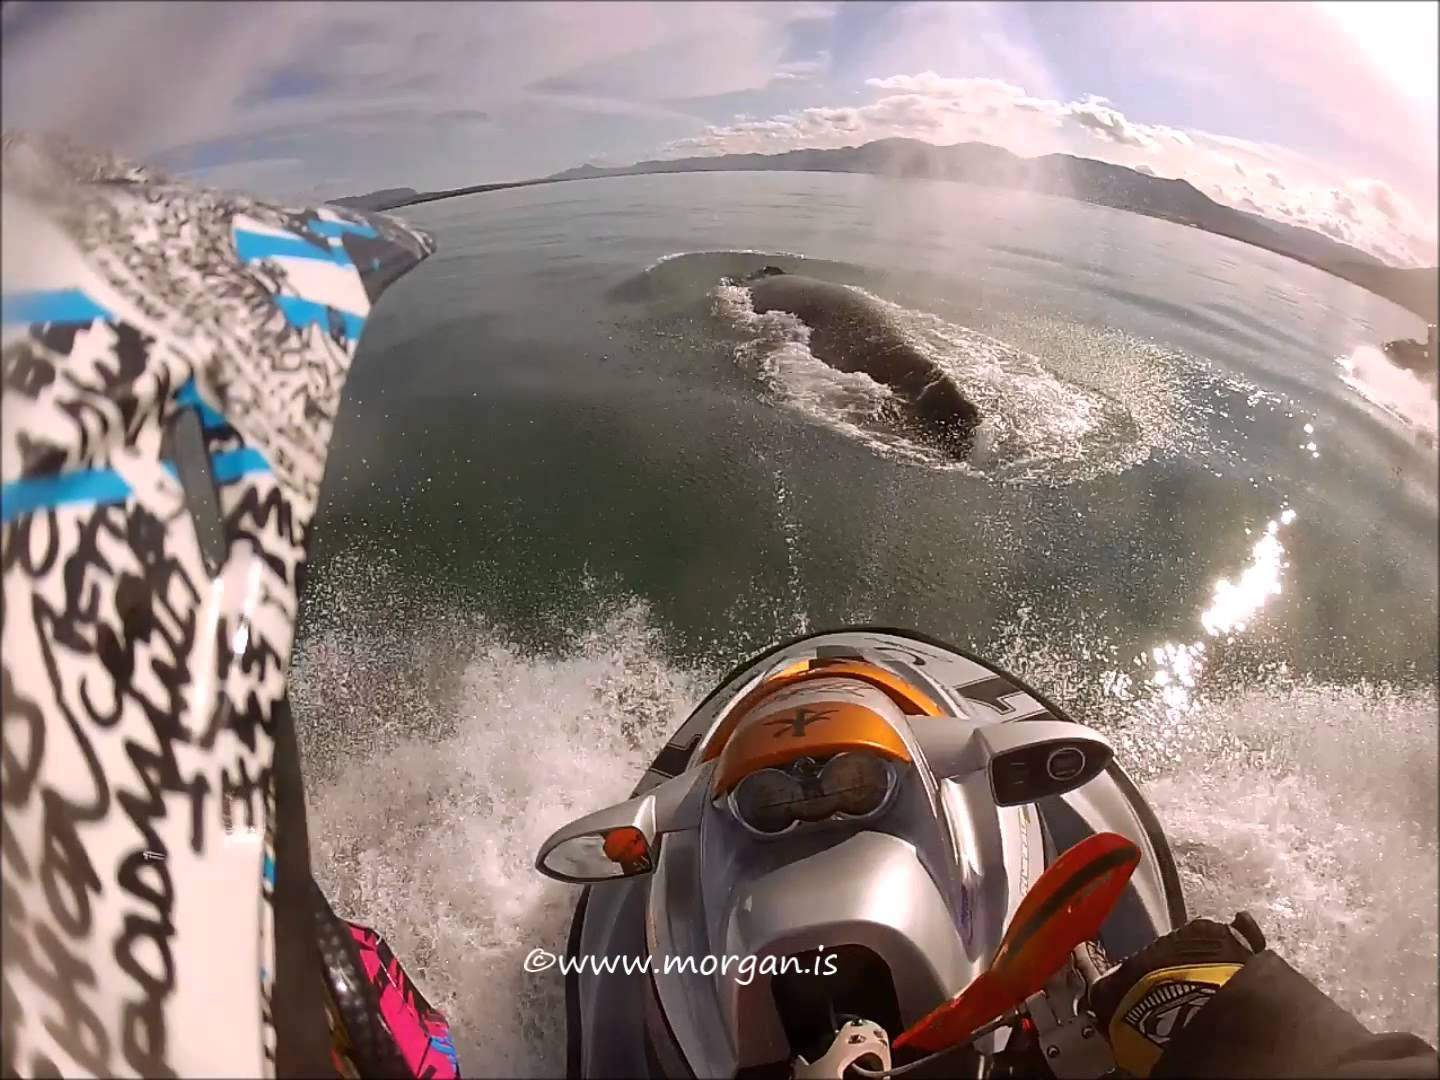 Jet Skier crashes into humpback whale, catches dramatic moment on camera (Video)